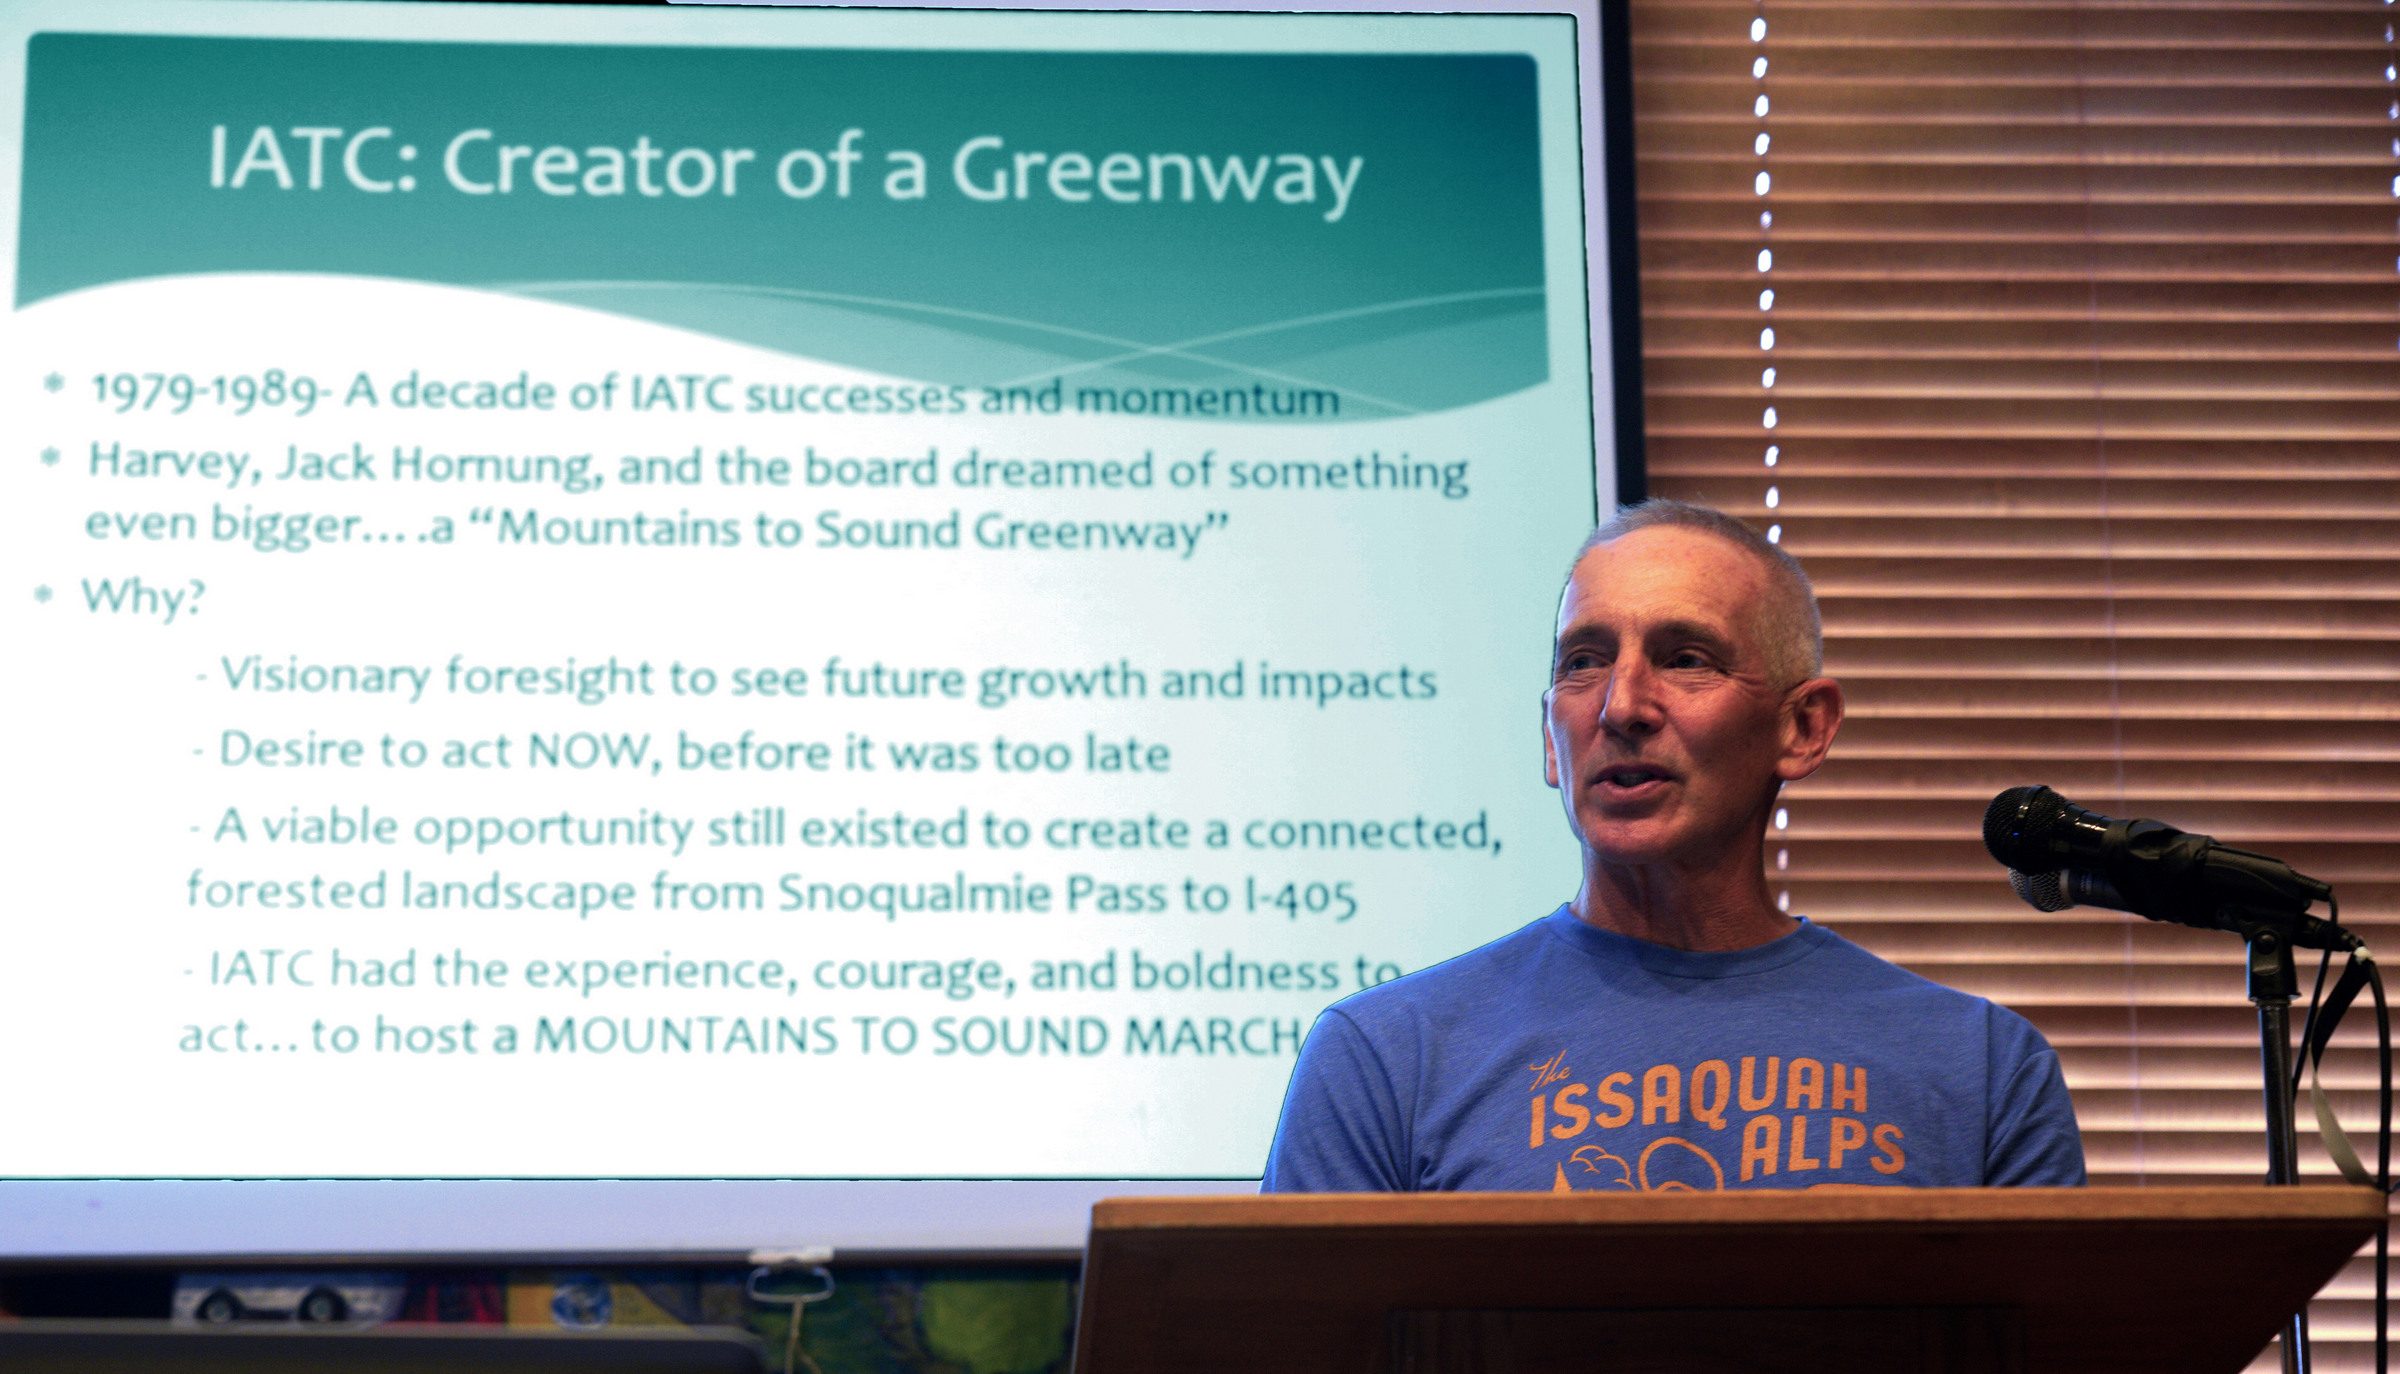 Ken Konisgsmark discusses the Mountains to Sound Greenway legacy.